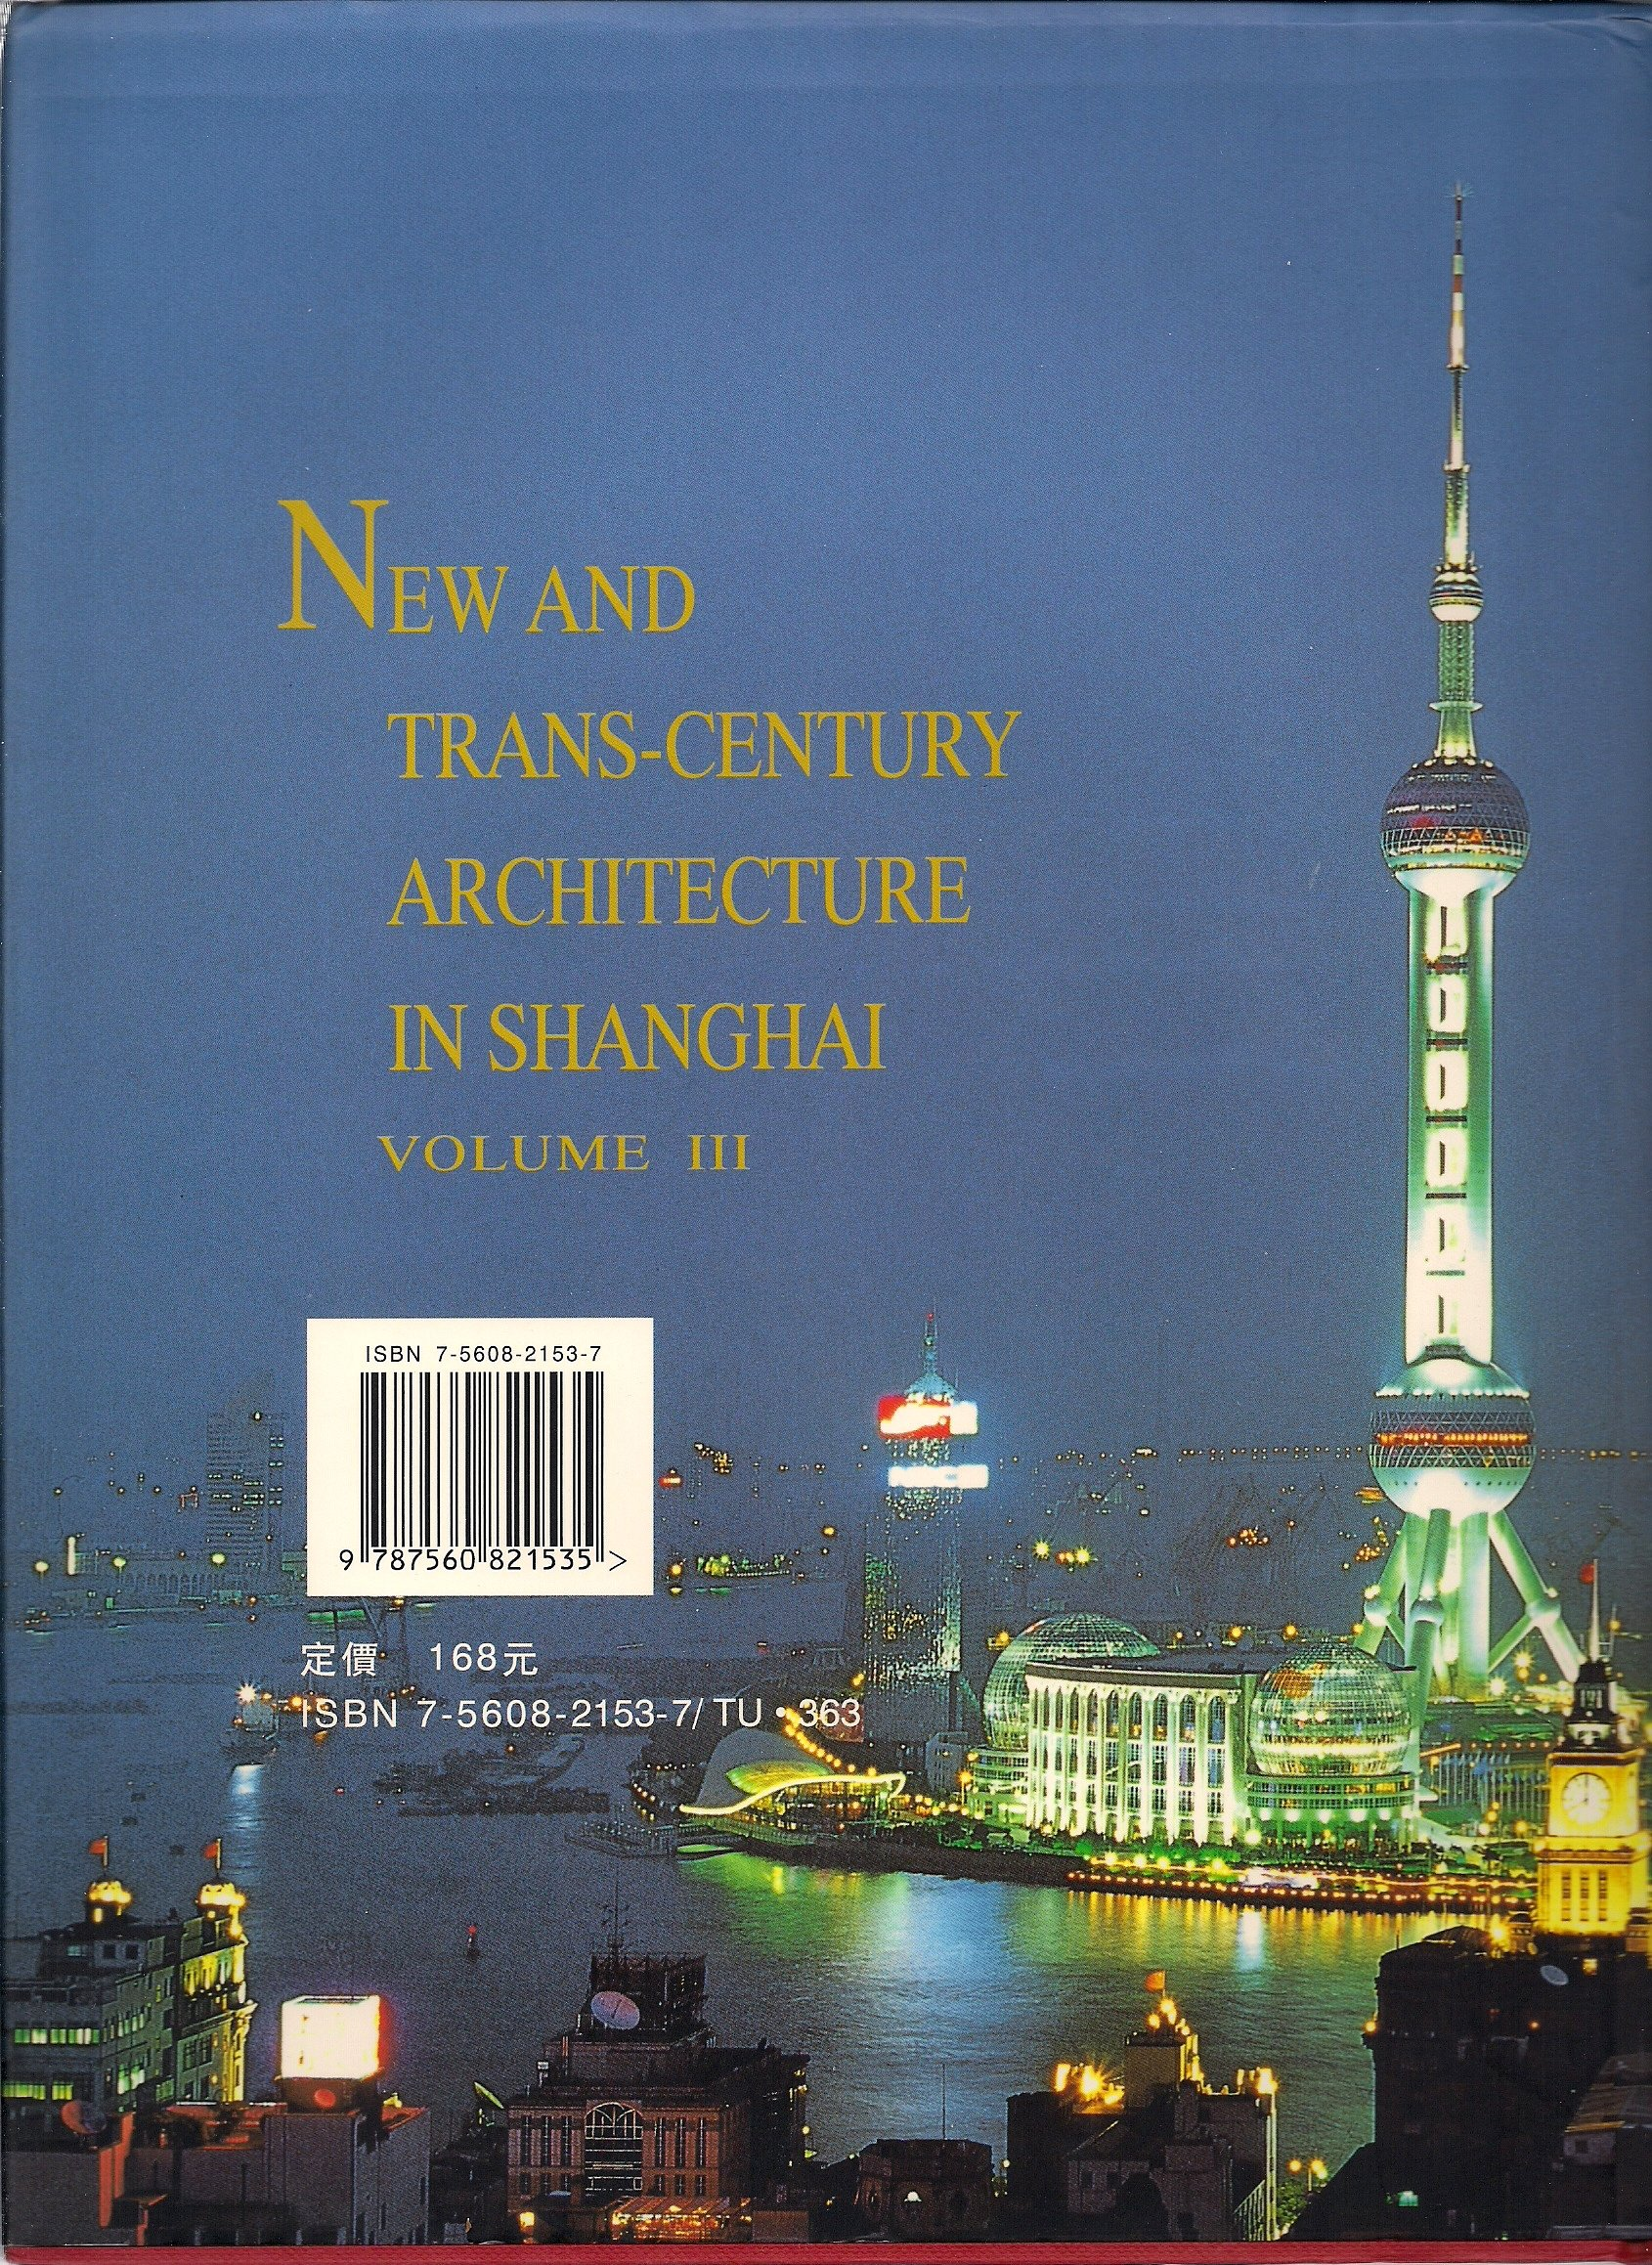 New and Trans-Century Architecture in Shanghai /Kʻua shih chi ti Shang-hai hsin chien chu, Volume 3